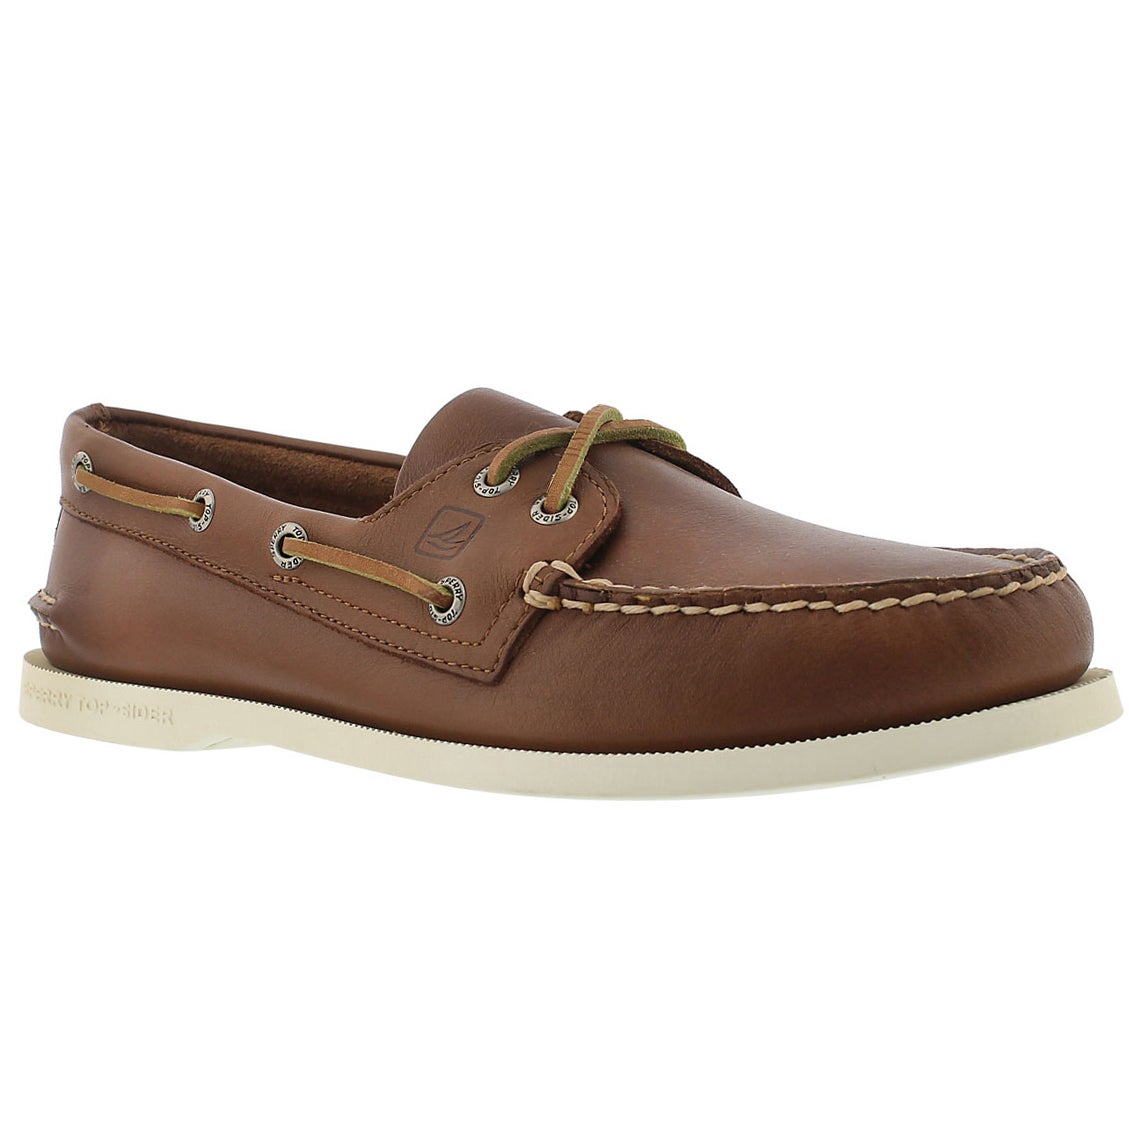 Mns A/O 2 eye tan boat shoe